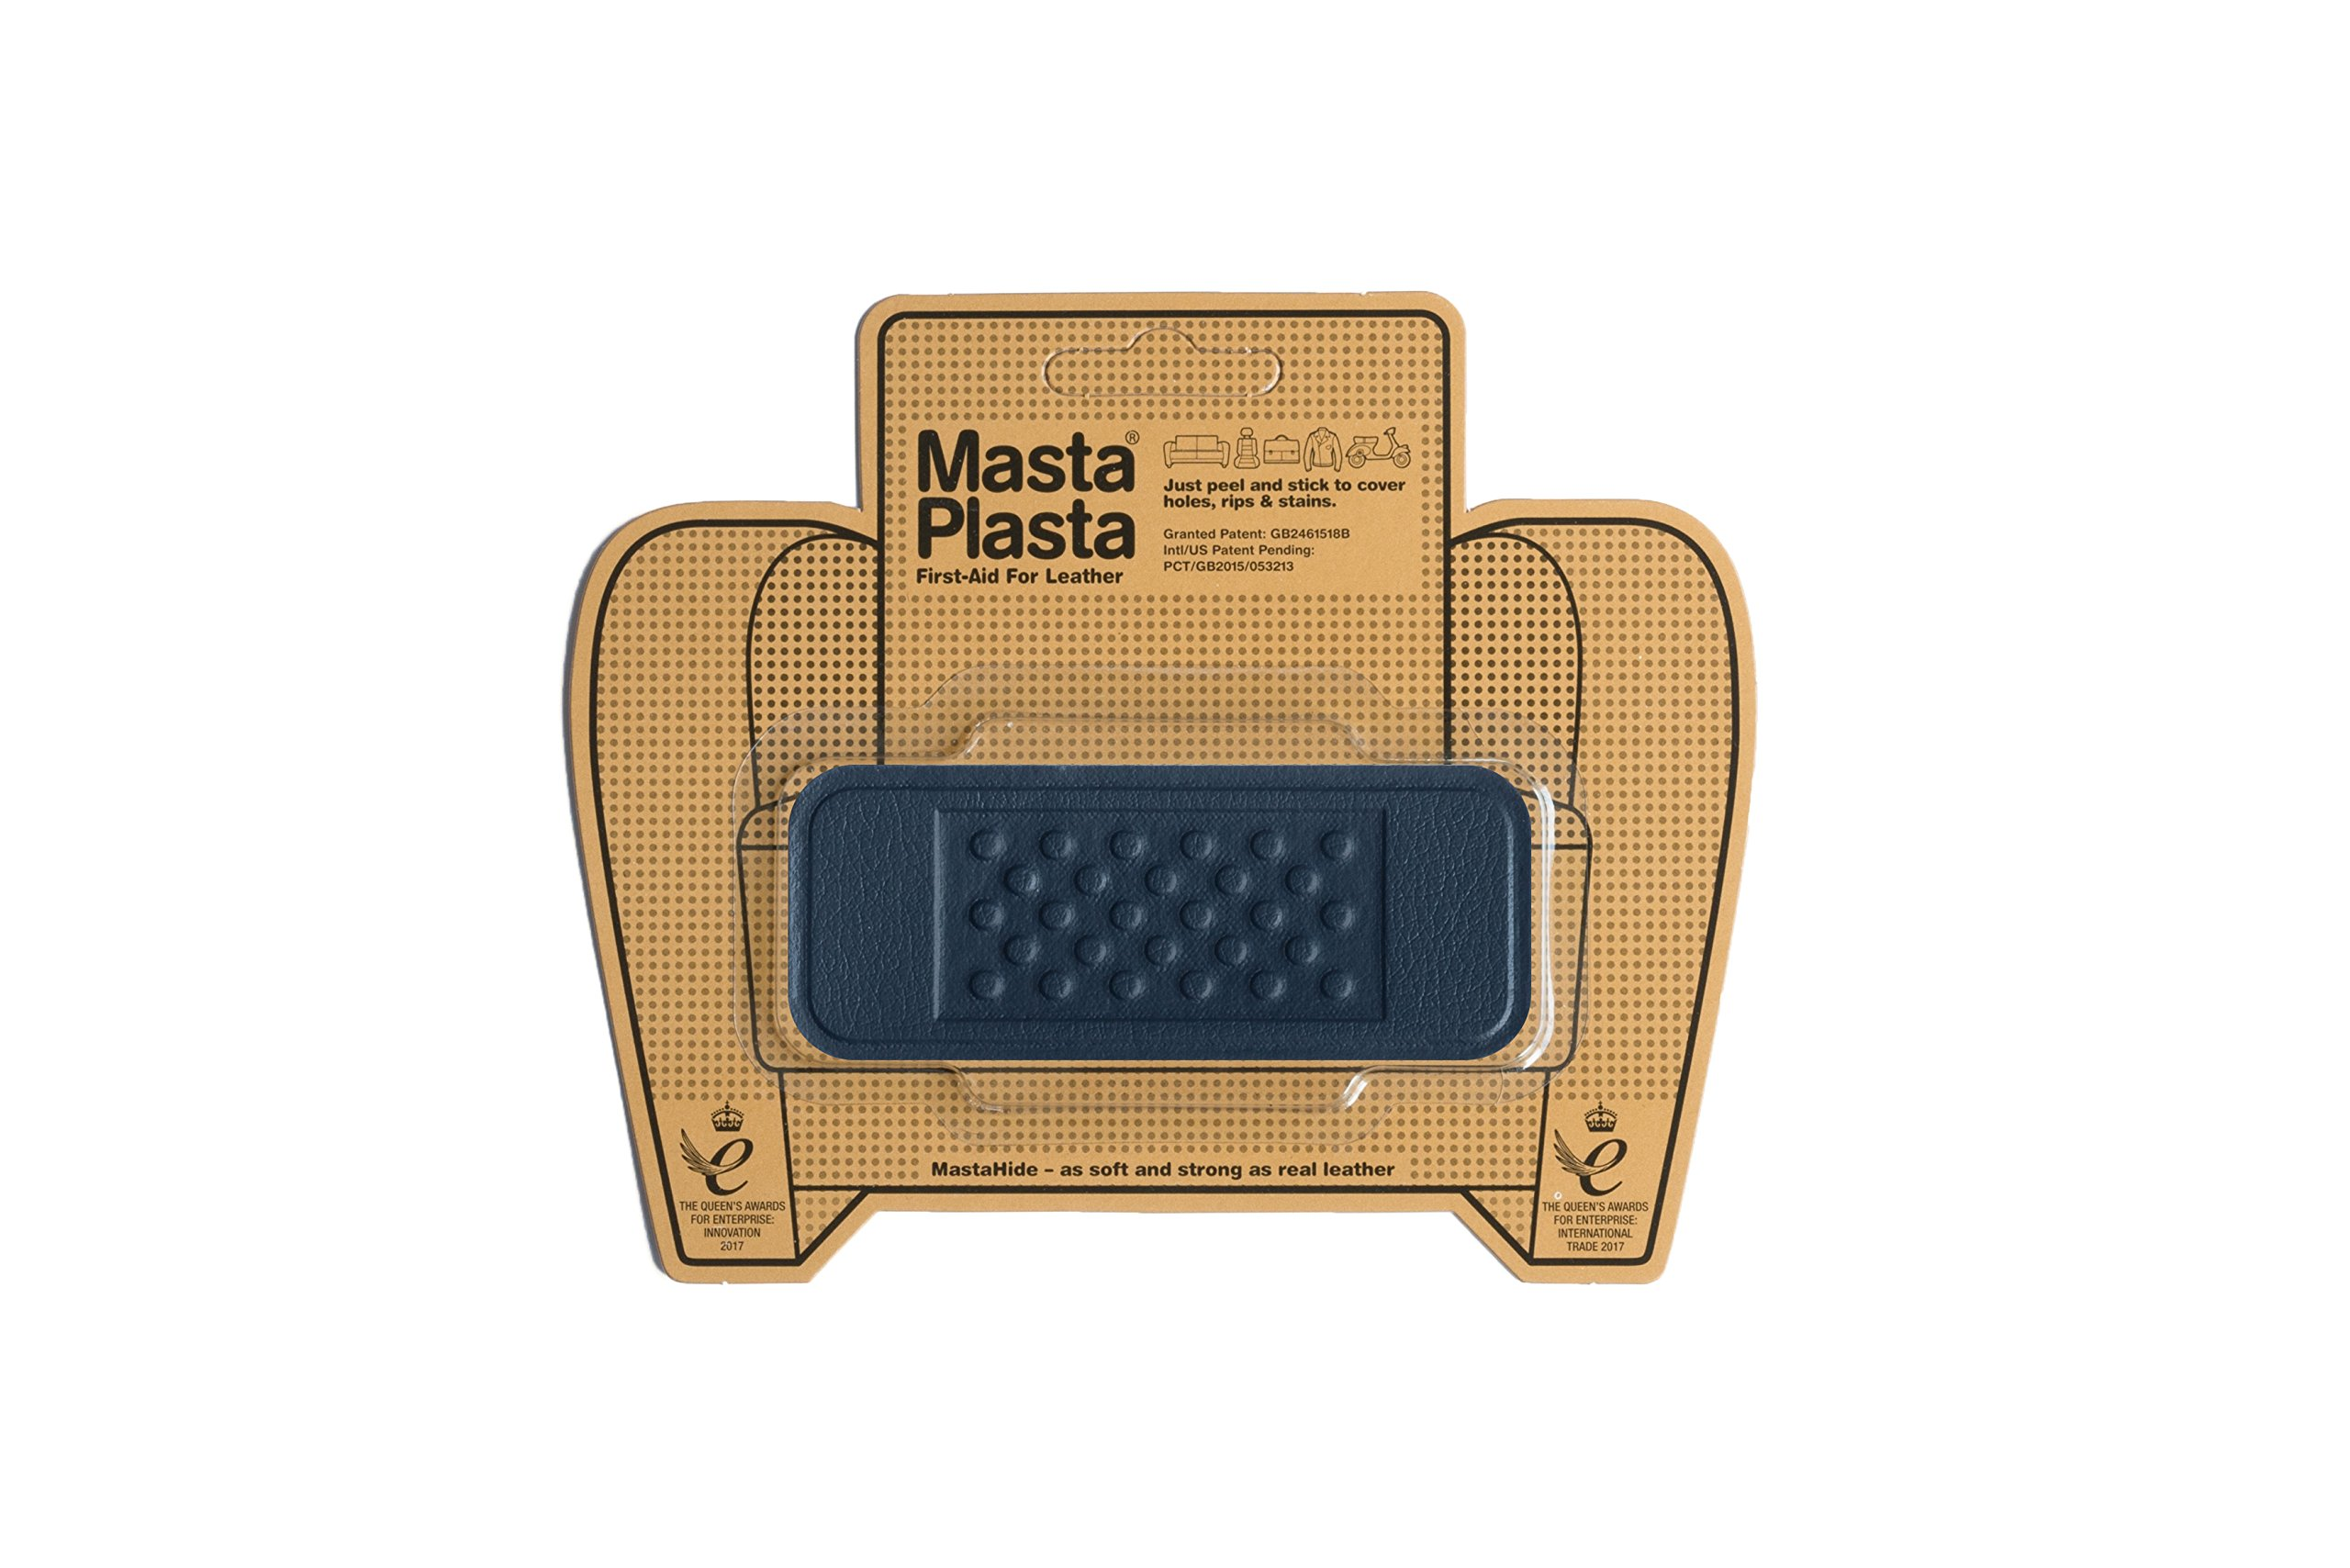 MastaPlasta Self-Adhesive Patch for Leather and Vinyl Repair, Bandage, Navy– Multiple Colors Available